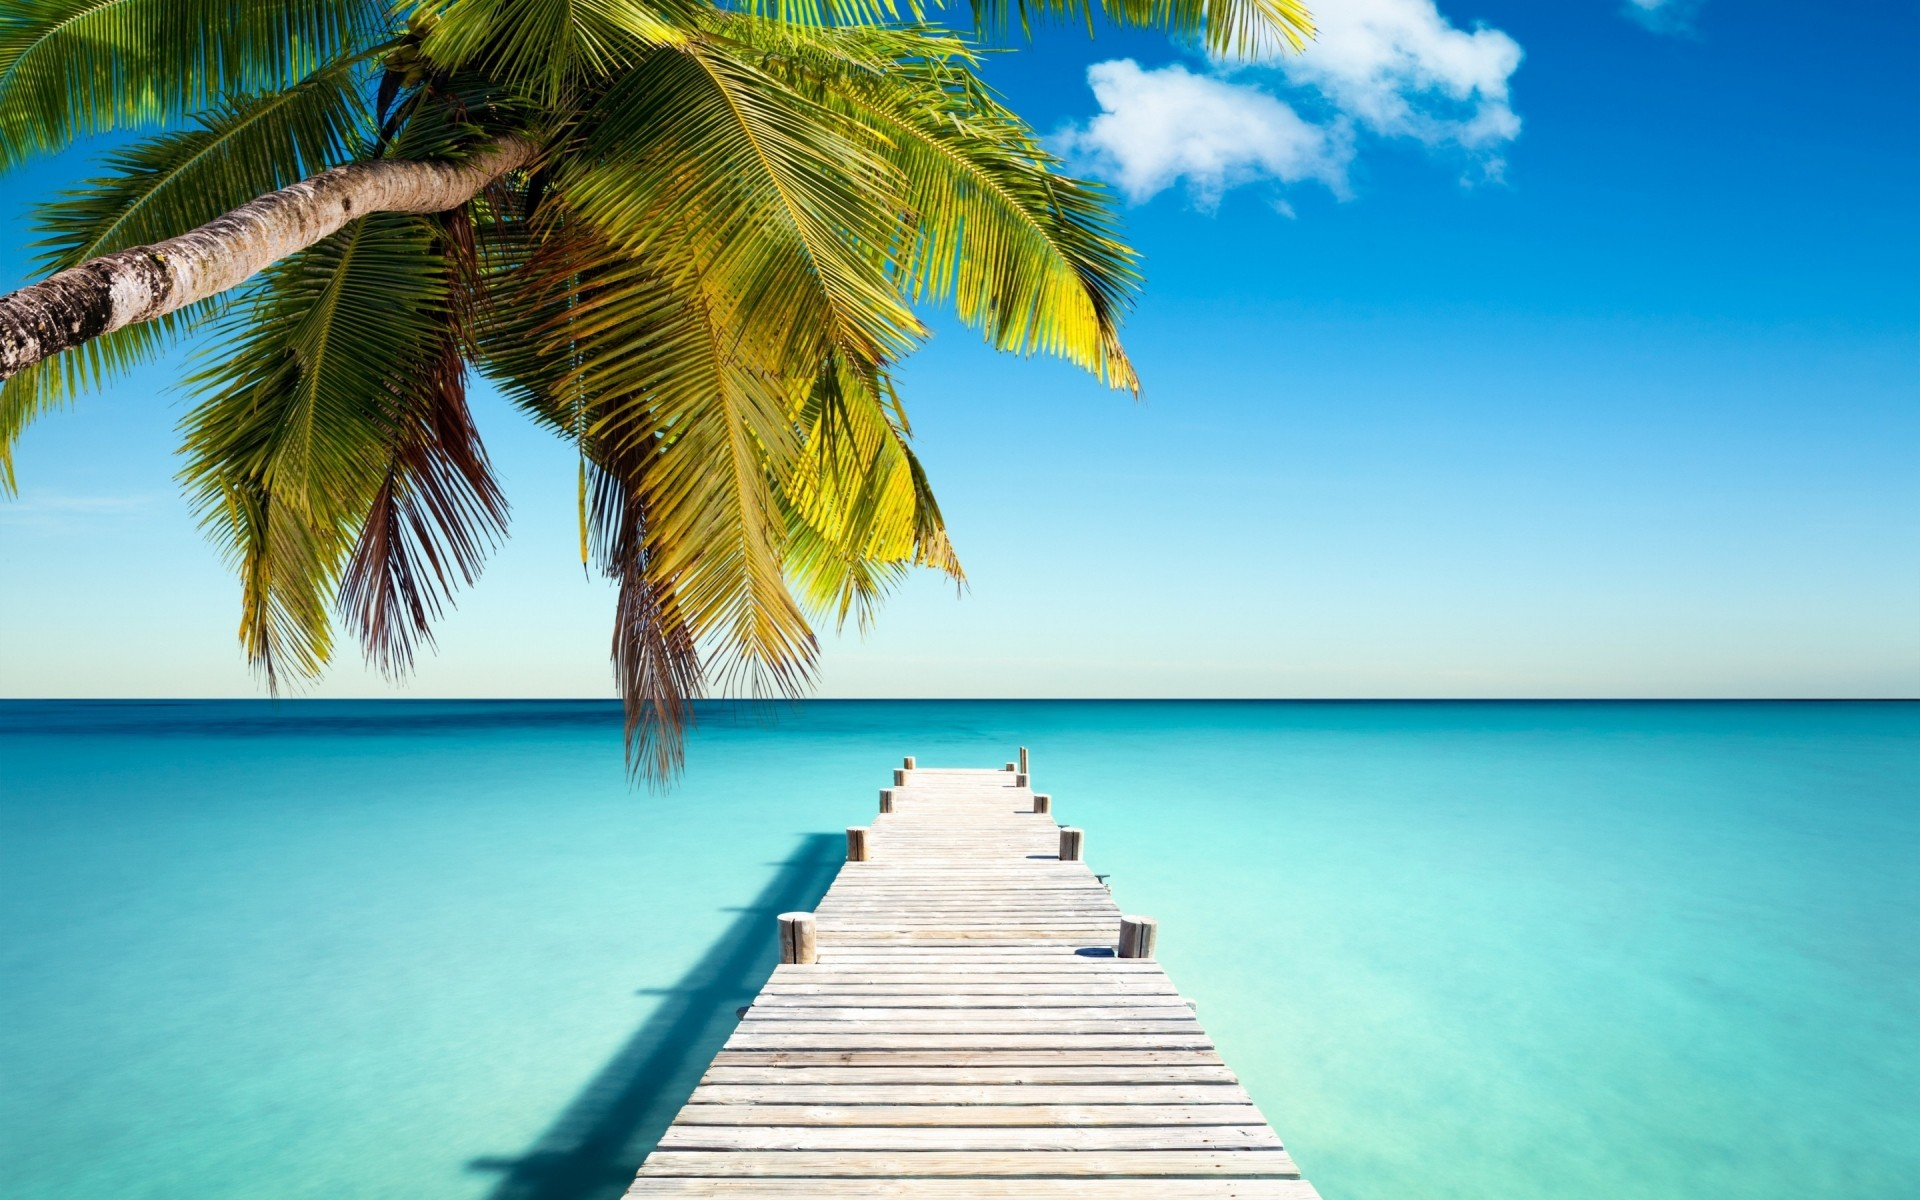 landscapes tropical beach exotic sand island idyllic paradise turquoise sun resort relaxation summer travel vacation seascape ocean water seashore palm lagoon pontoon sea